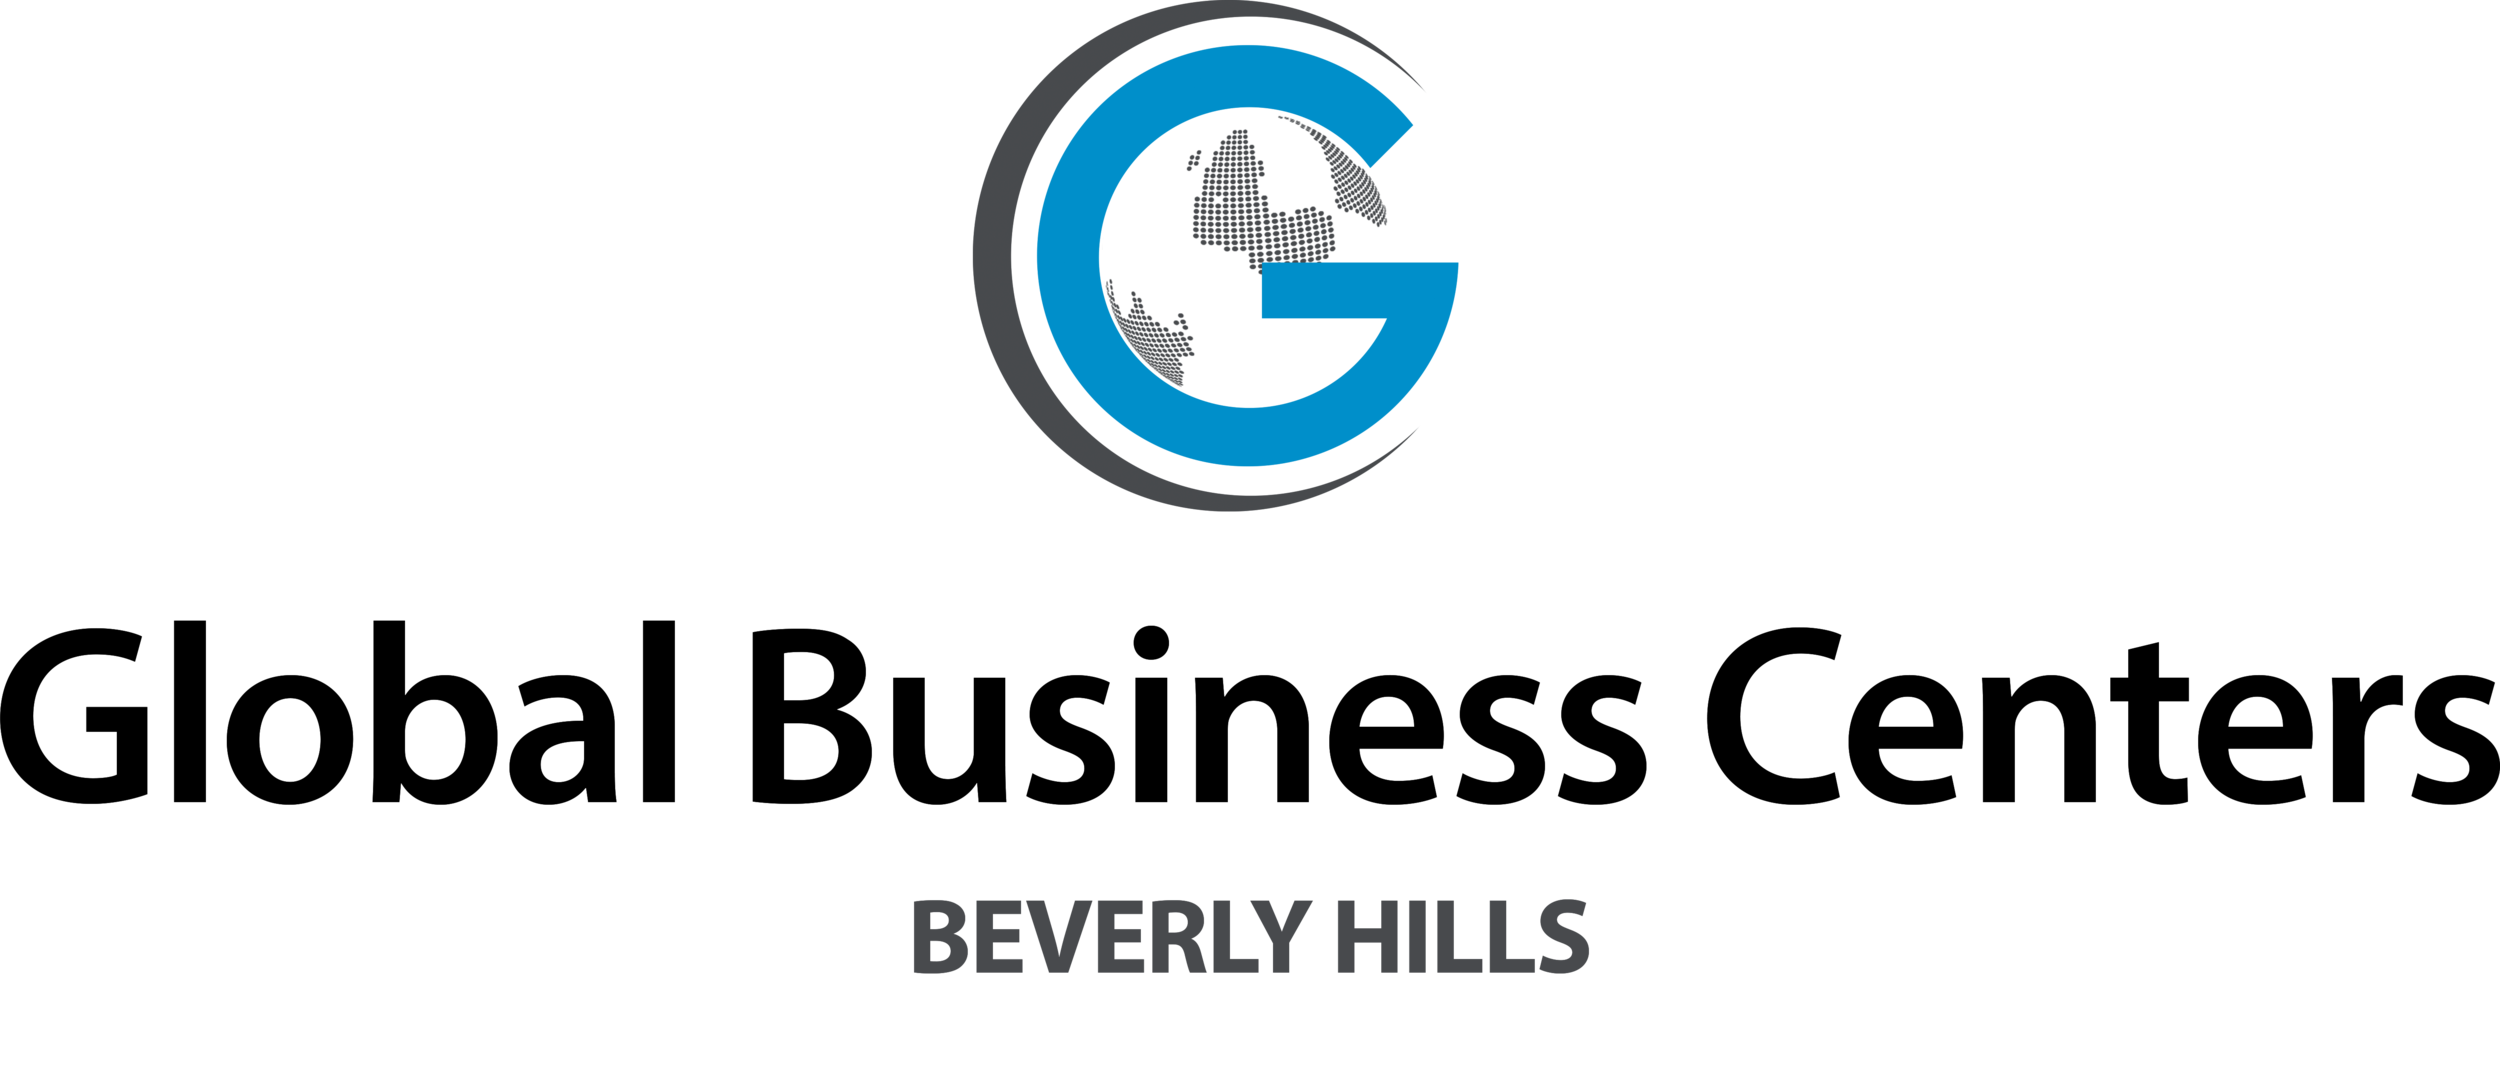 GBC Logo (stacked text).png